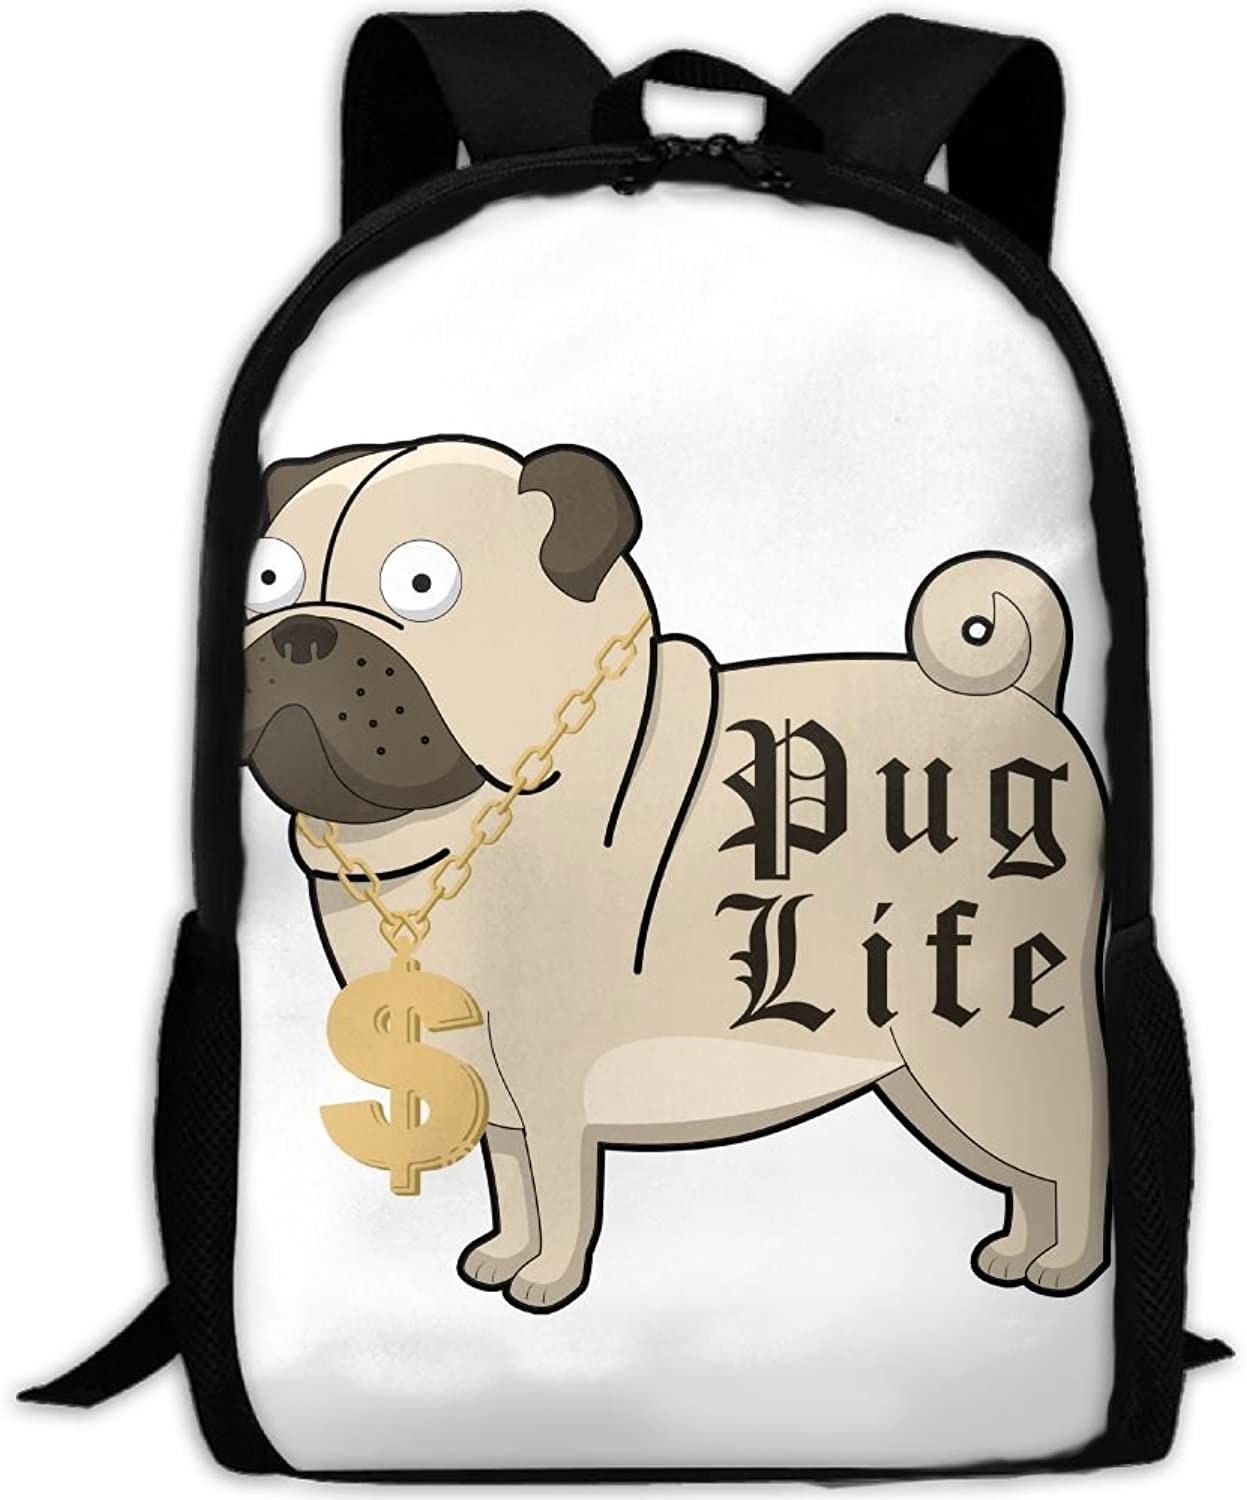 6f8b5f56d Adult Backpack Life Cartoon With gold Chain Necklace College Daypack ...